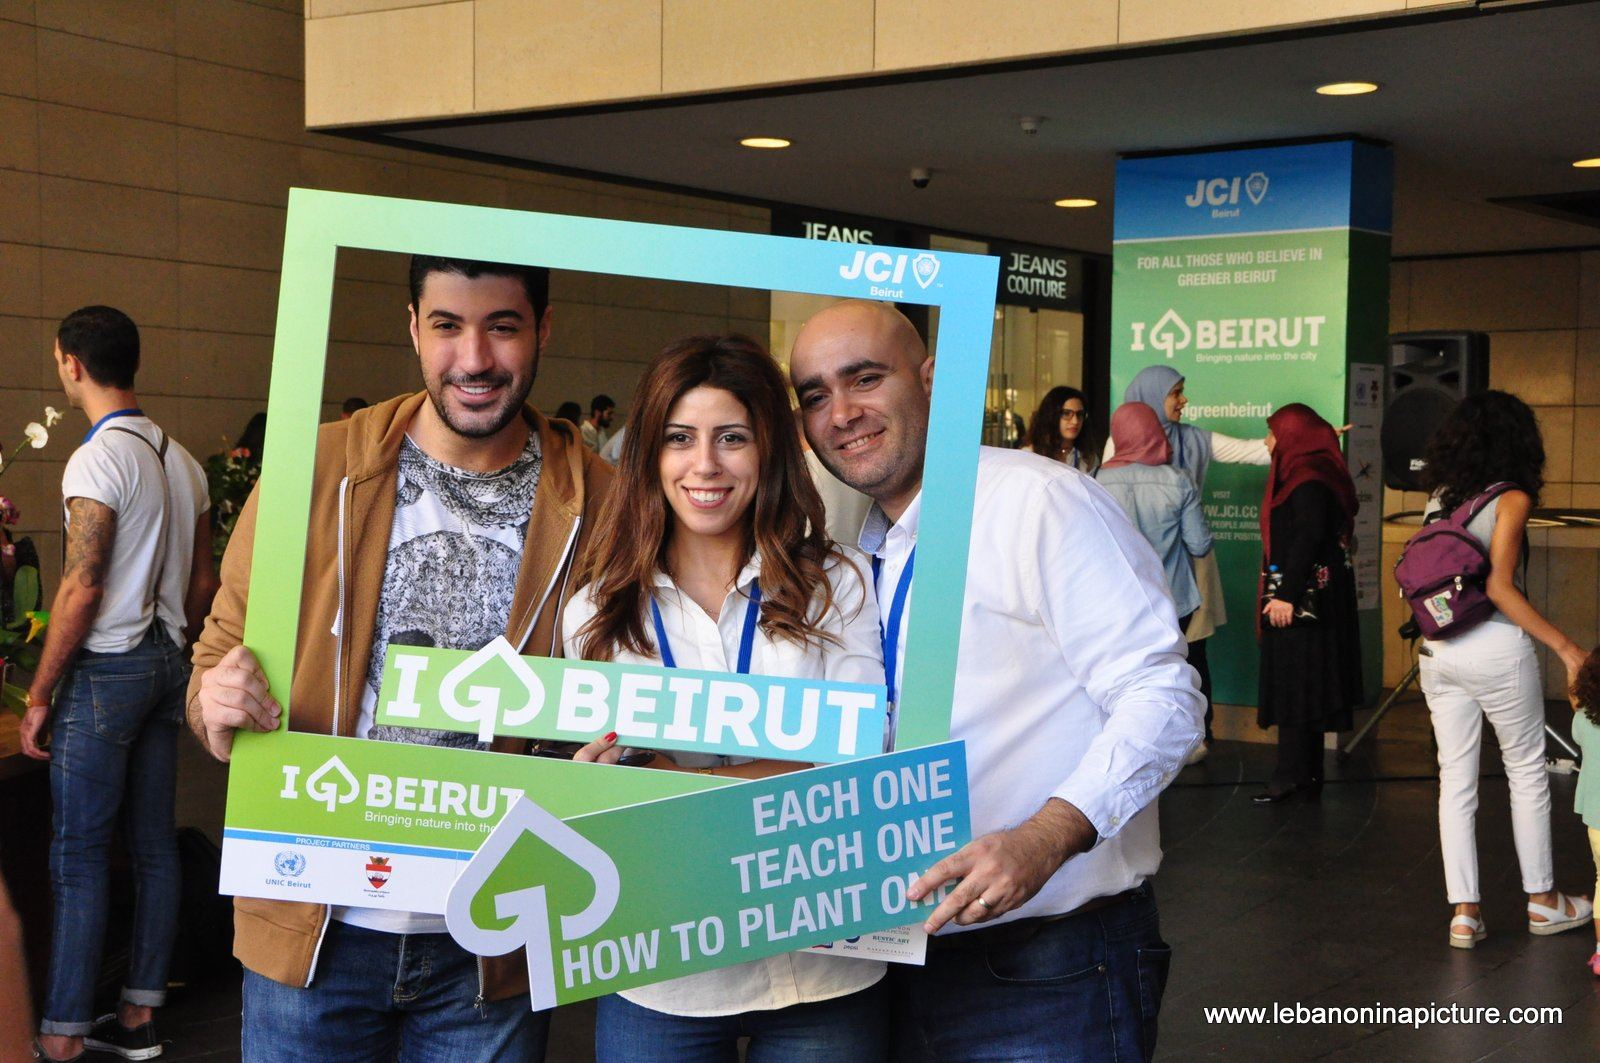 JCI Lebanon's I Green Beirut Event Pictures from Beirut Souks